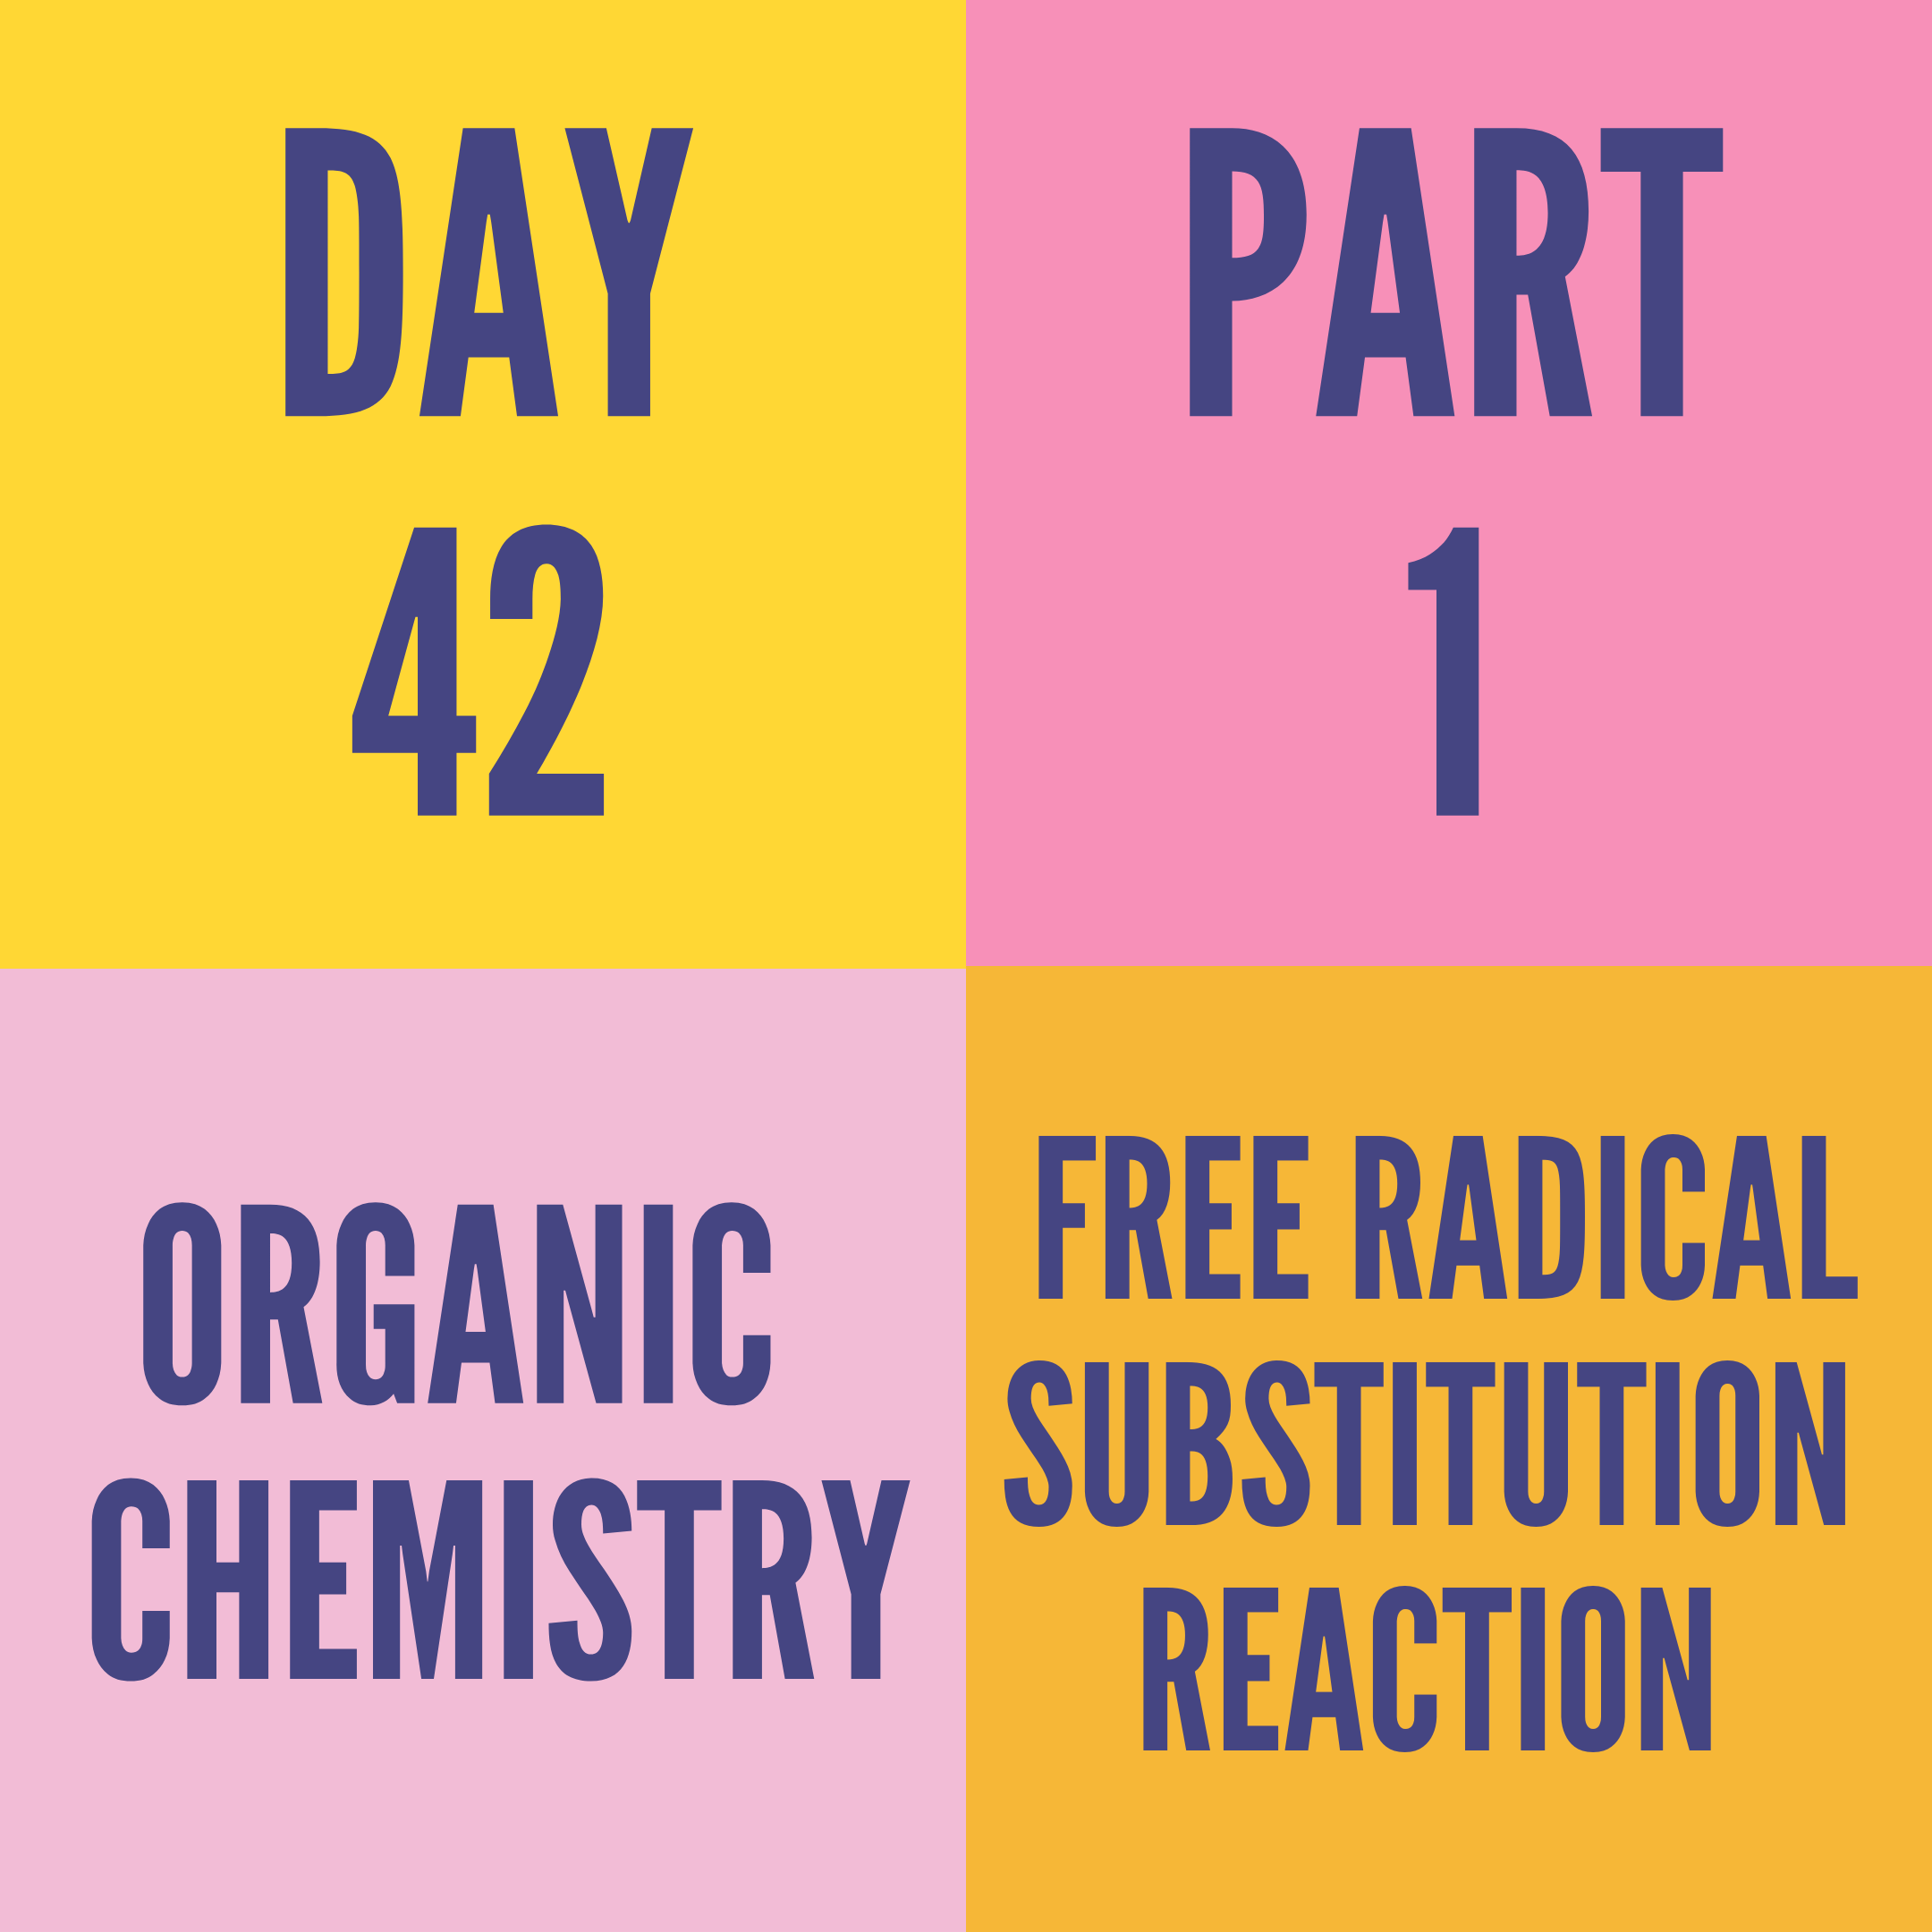 DAY-42 PART-1   FREE RADICAL SUBSTITUTION REACTION